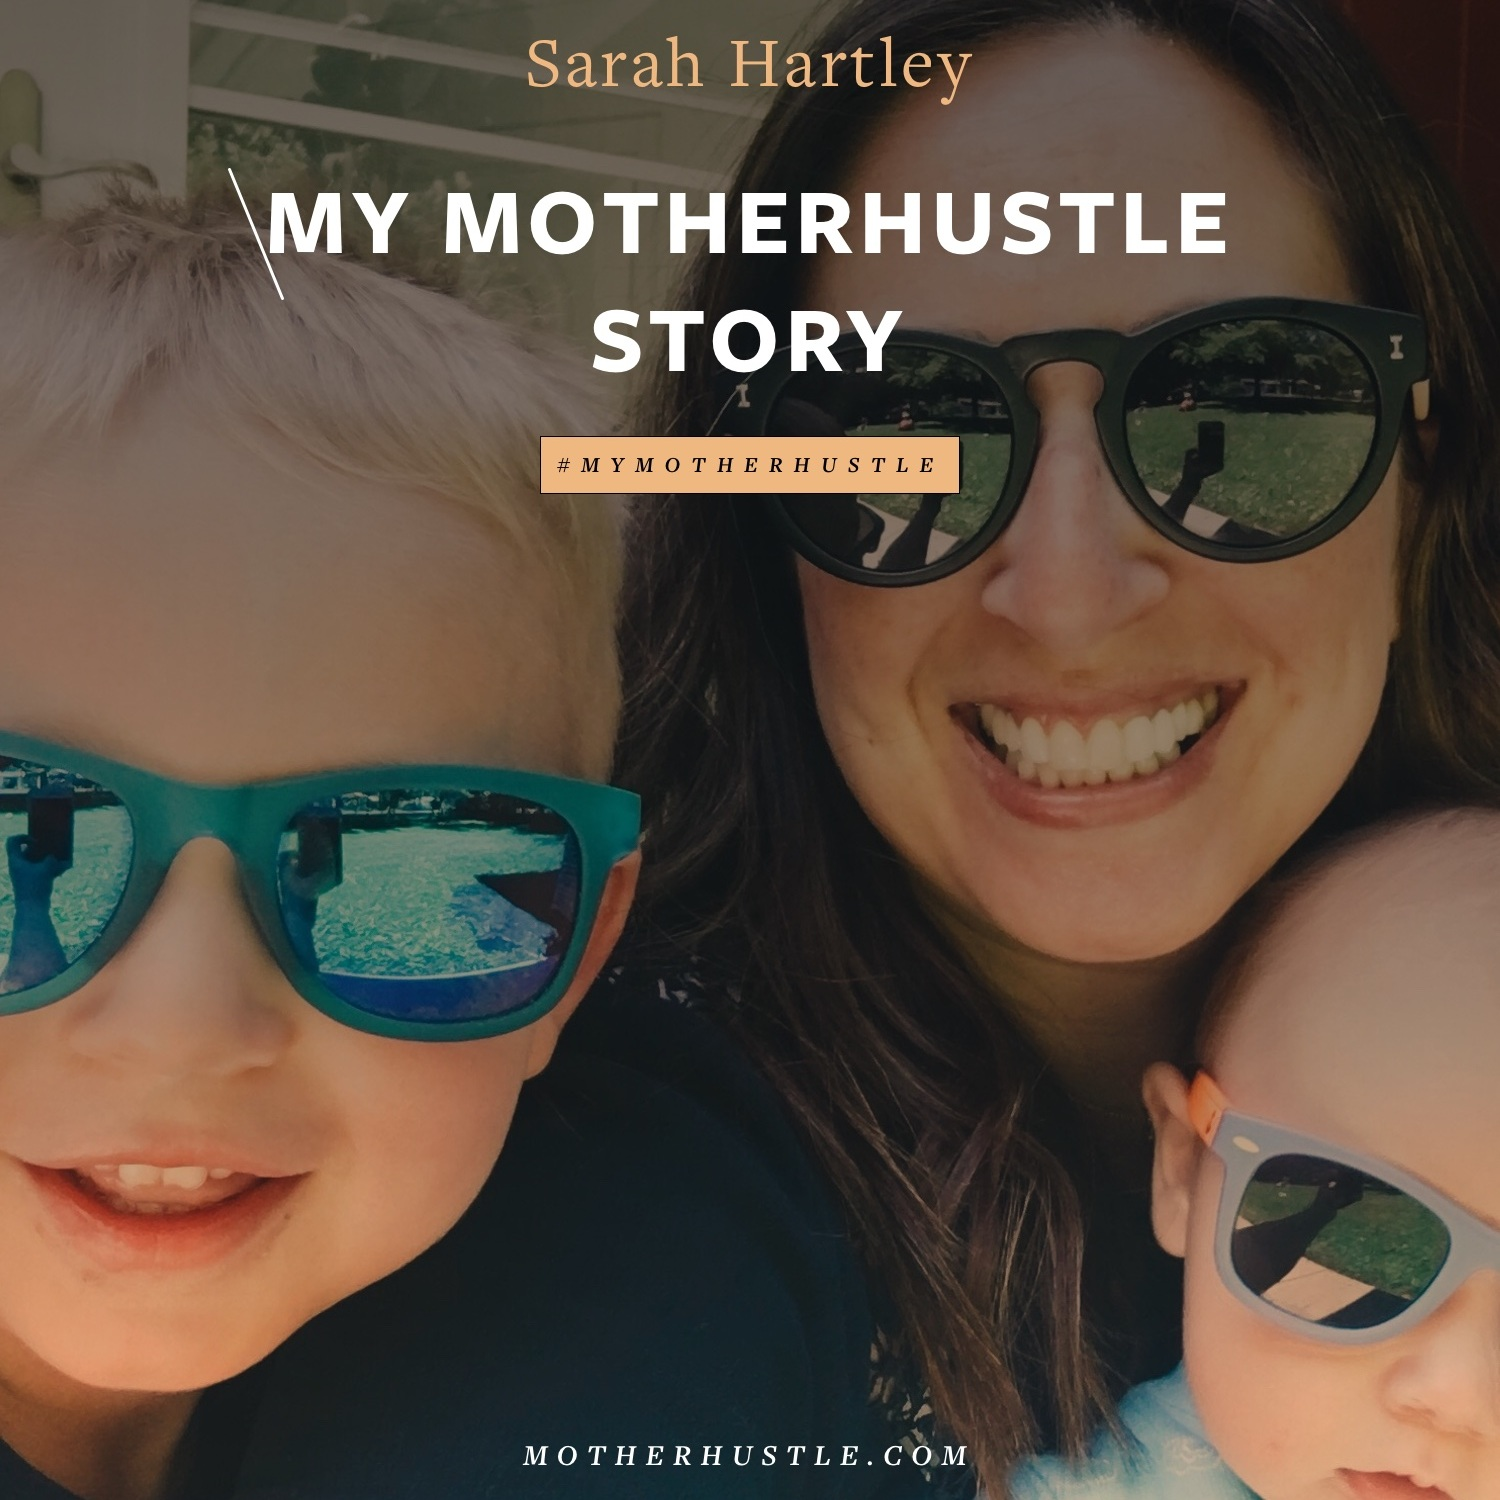 MyMotherHustleStory-Sarah-Hartley.jpg